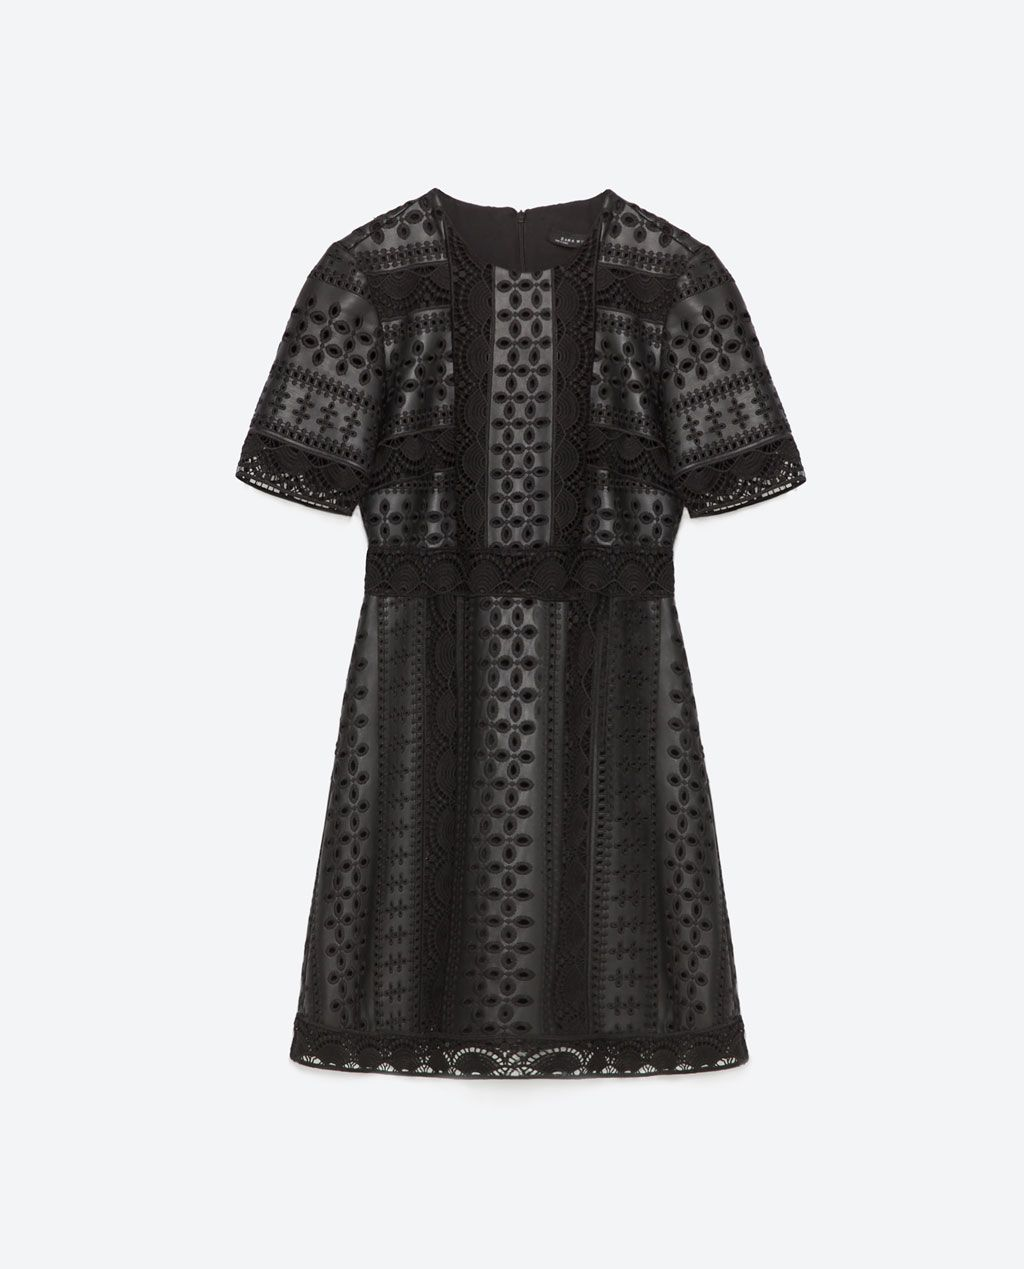 Contrast lace dress zara  EMBROIDERED DRESSDRESSESWOMAN  ZARA United States    My